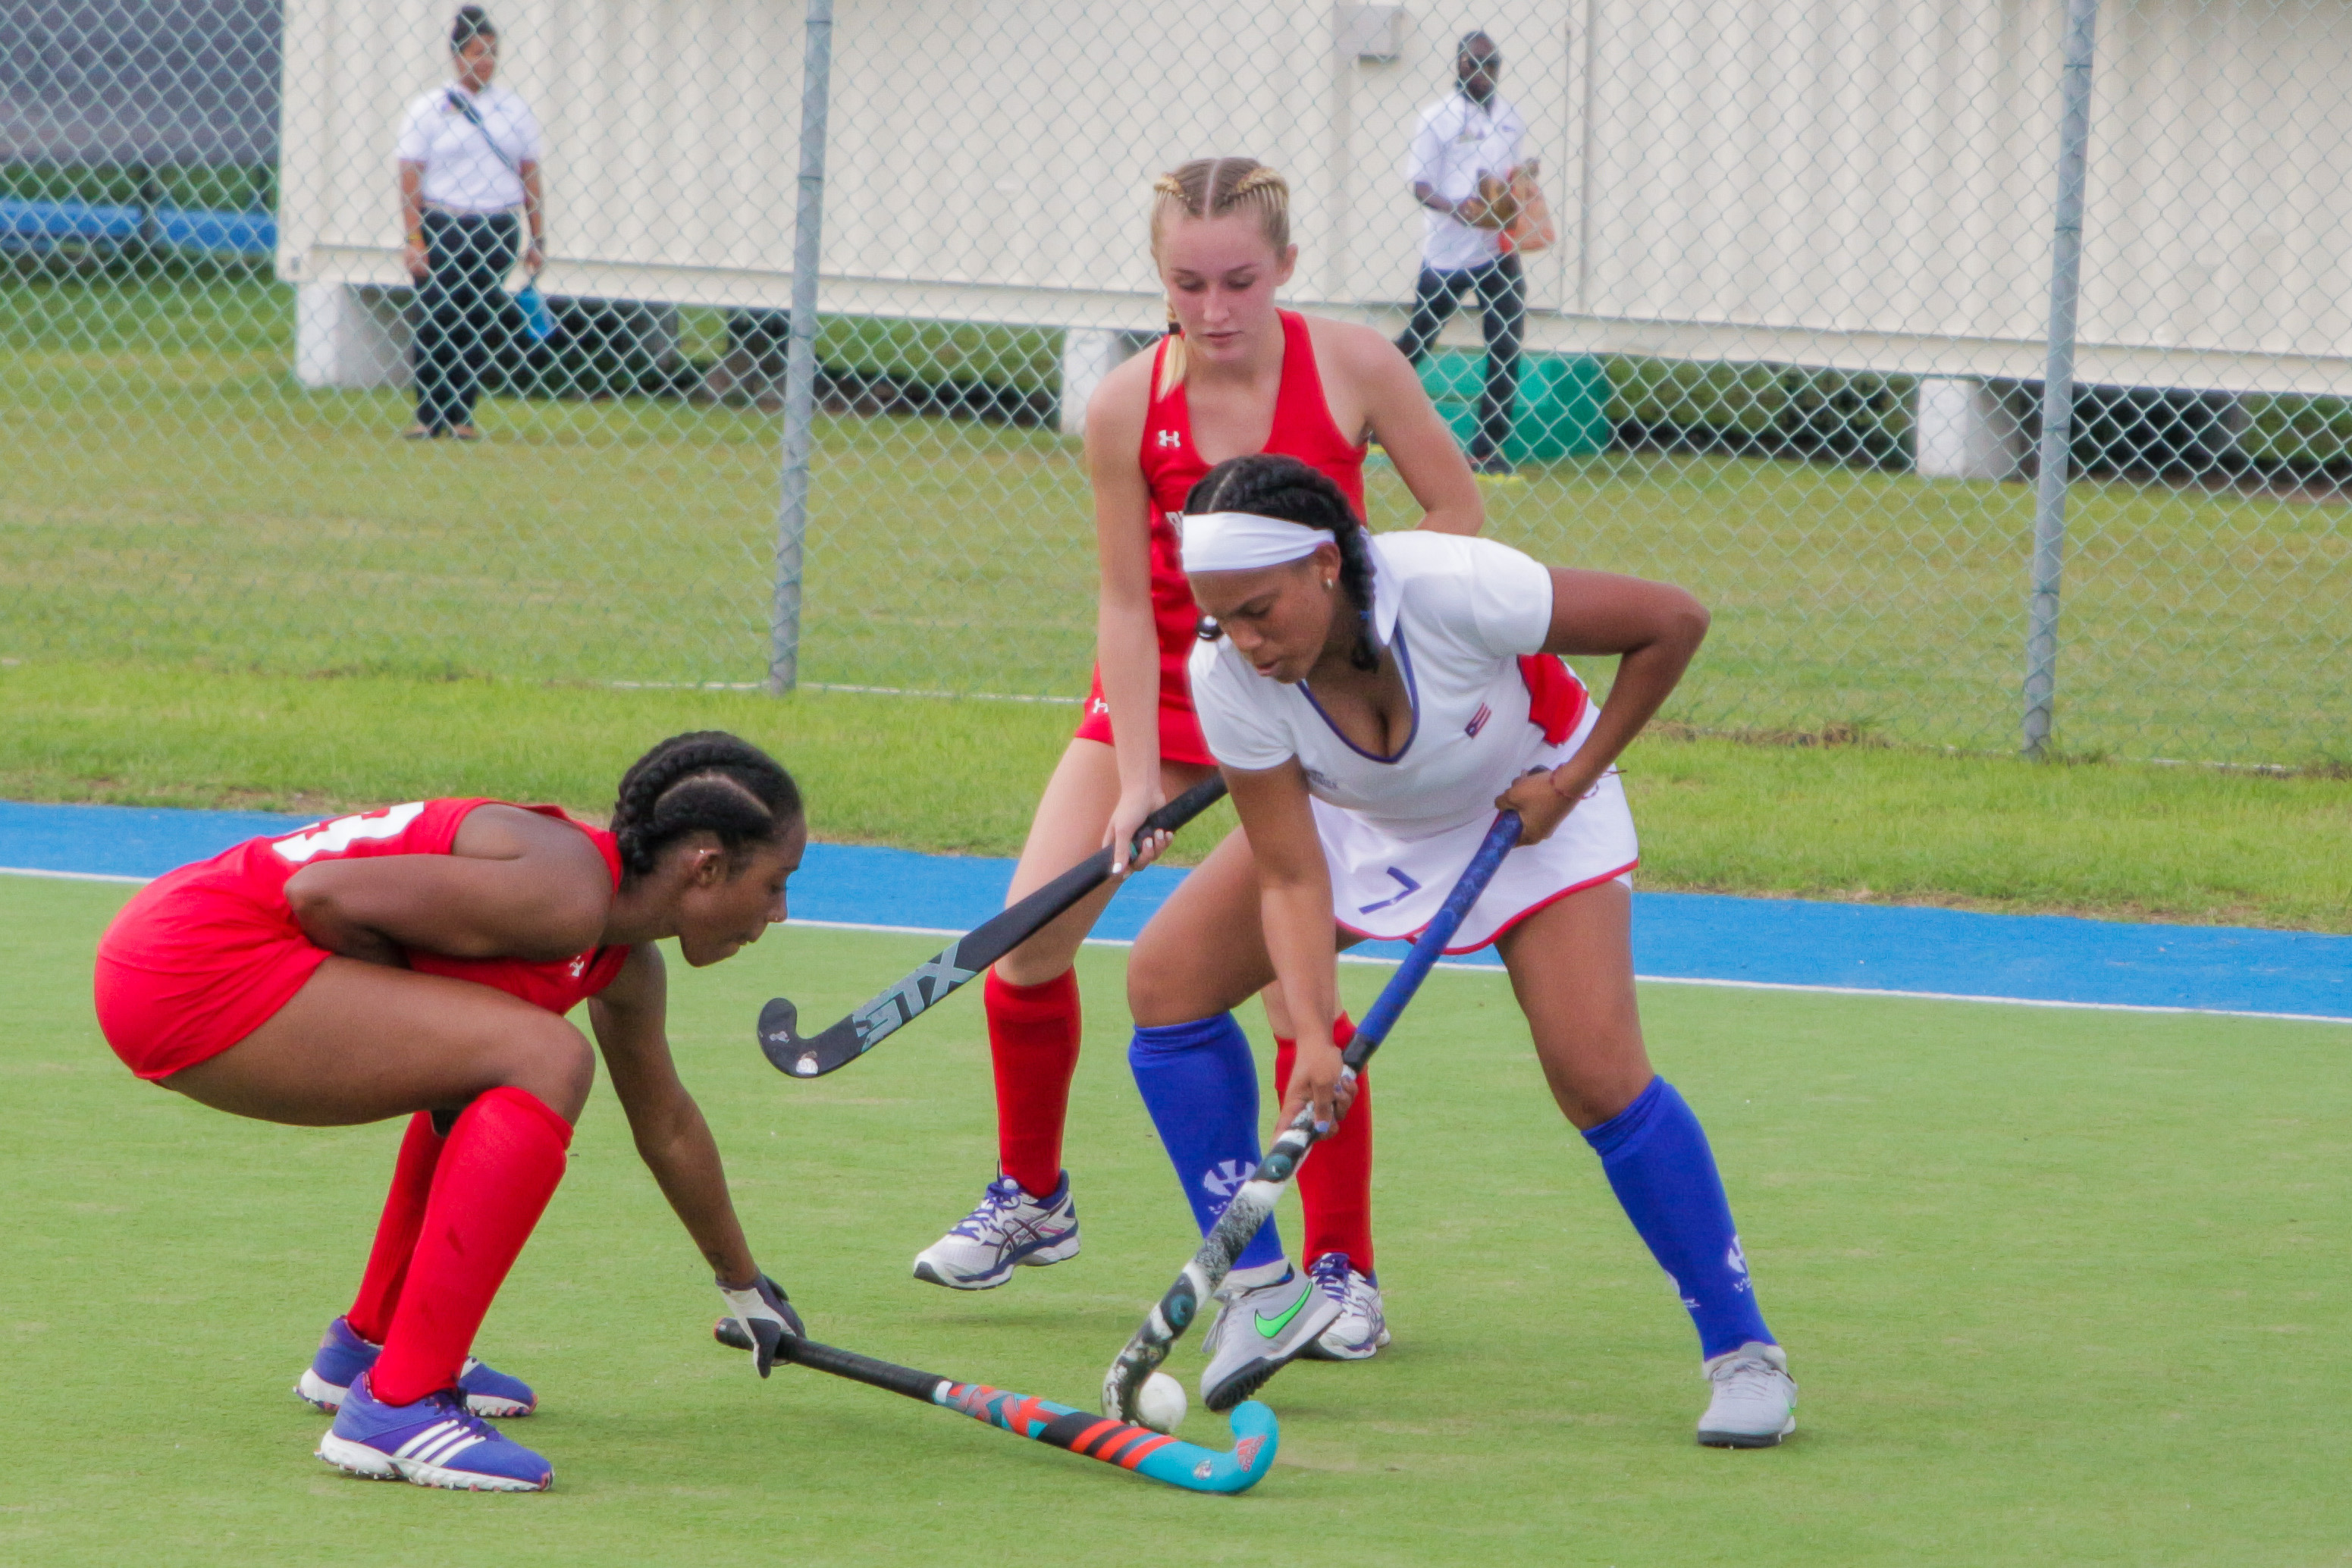 Qualifiers for the Central American and Caribbean Games - Bermuda vs Puerto Rico